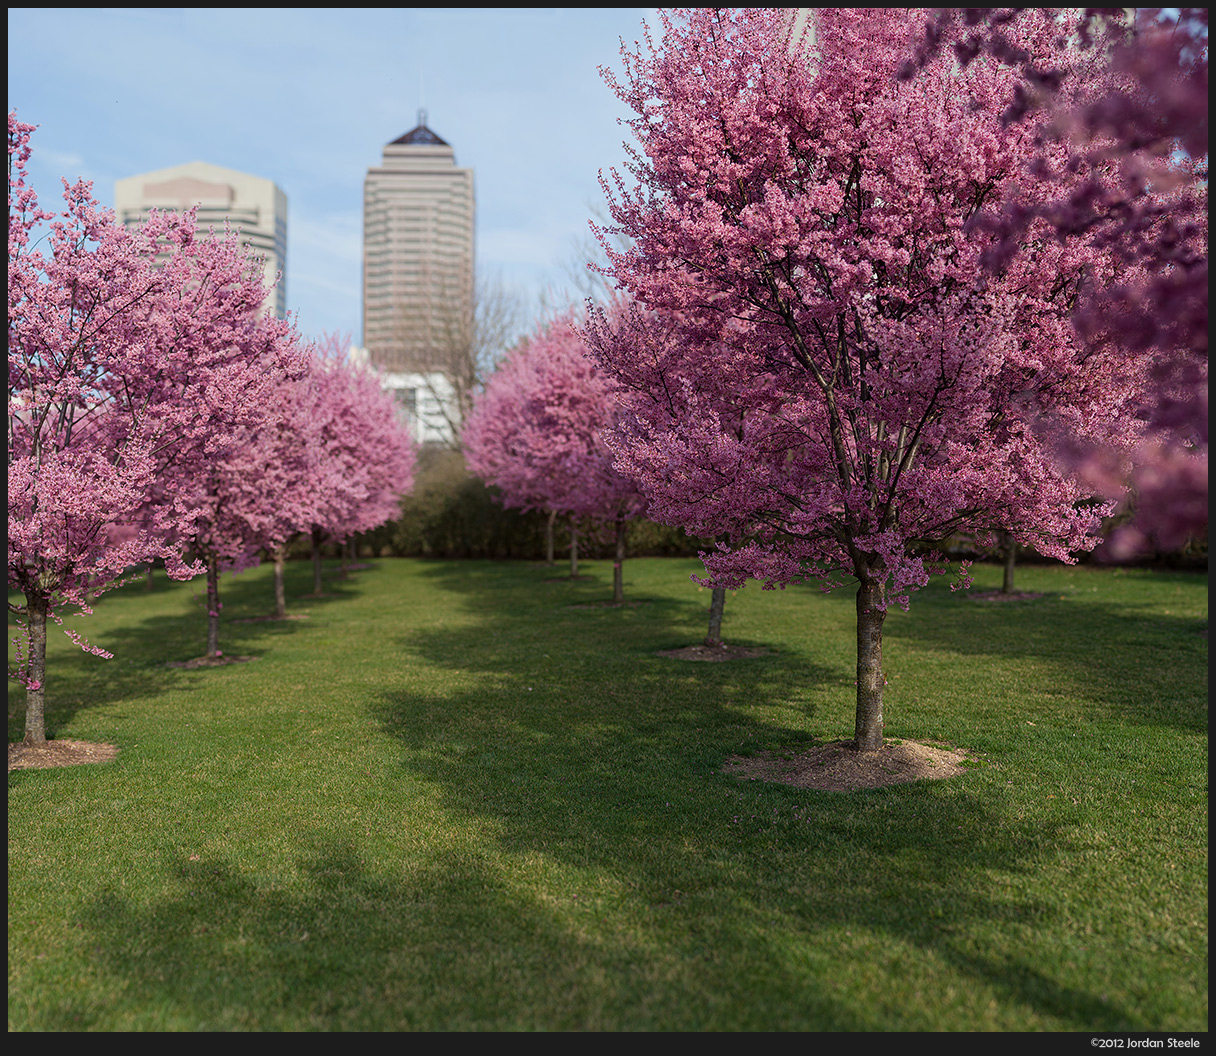 Blossoms in the City - 64 Image Stitch: Panasonic GH2 with Rokinon 85mm f/1.4, Click to enlarge!